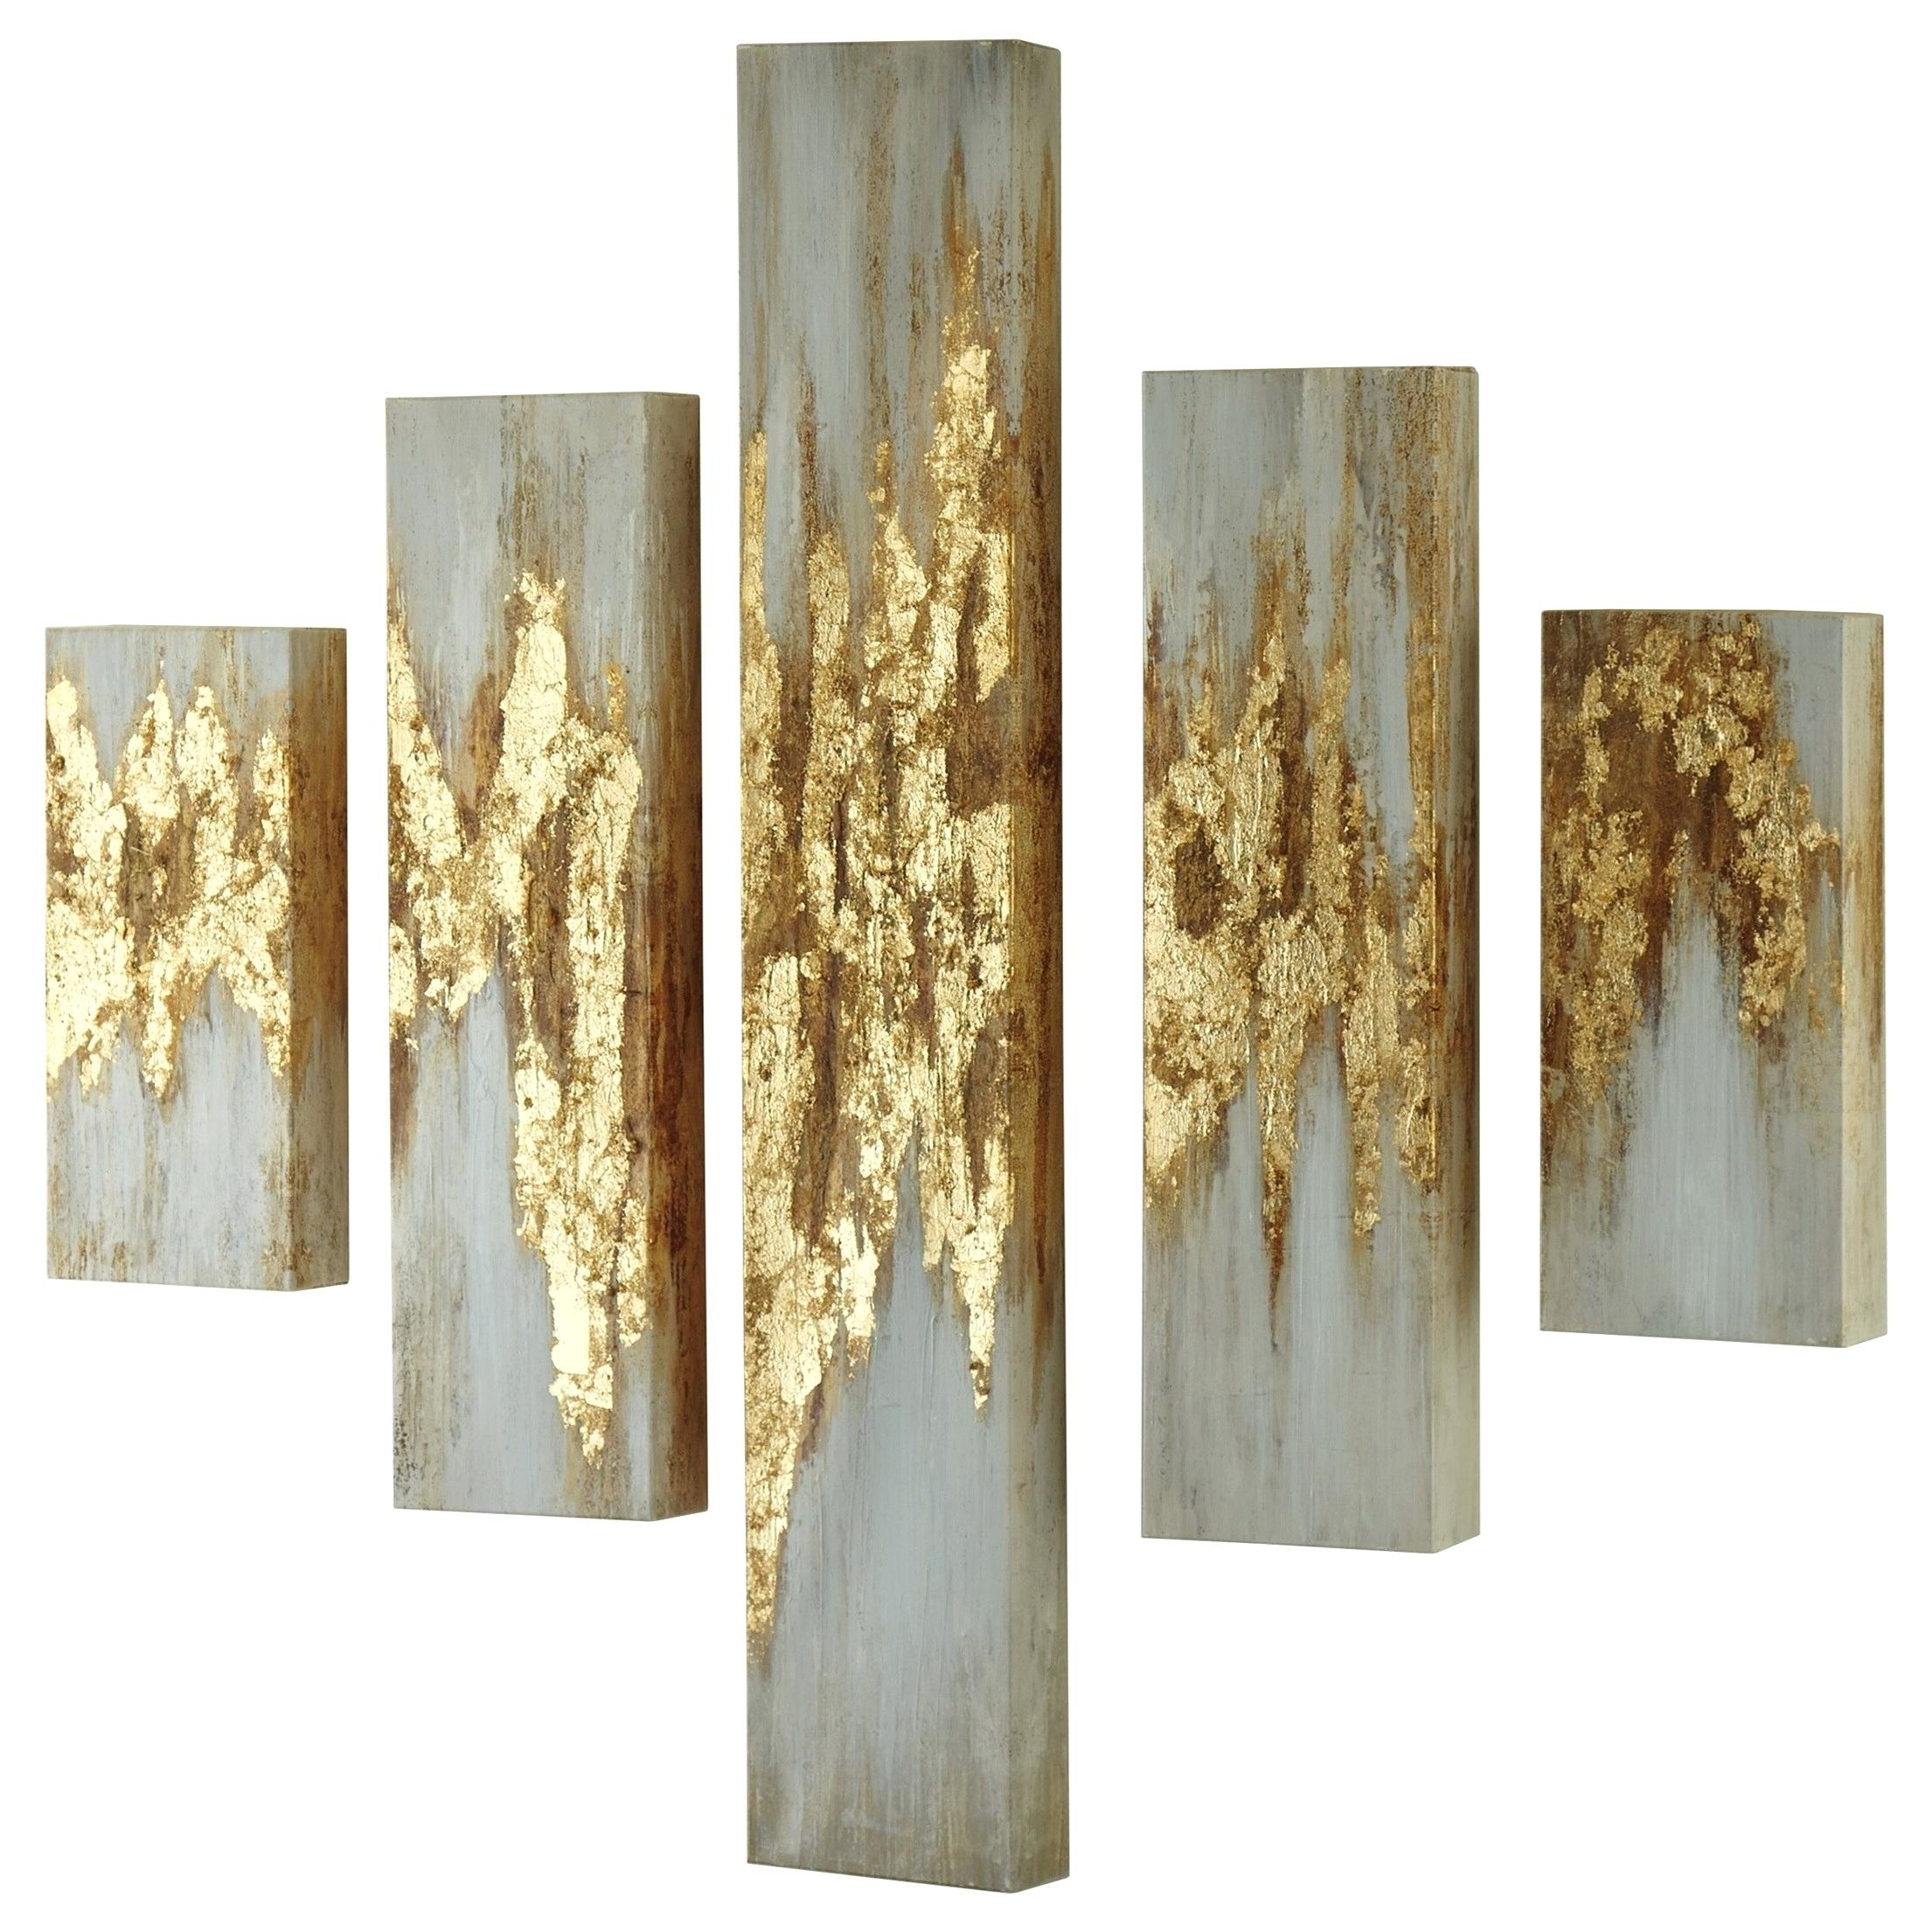 Ashley Wall Signature Designwall Art Gold Finish White Wall Art Pertaining To Latest Ashley Furniture Wall Art (View 15 of 15)